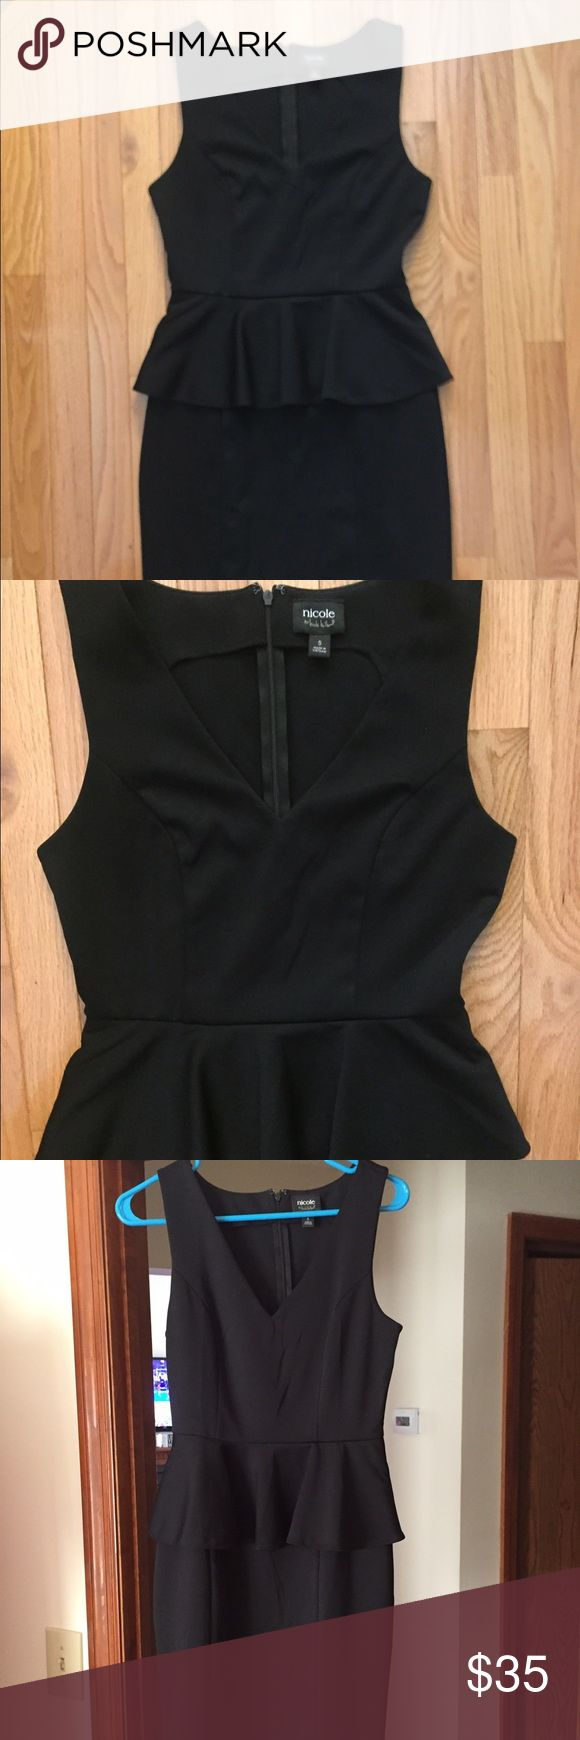 Nicole Miller Black Peplum Dress Nicole by Nicole Miller black peplum style dress. NWOT.  Bought for an event and didn't end up wearing it.  Super flattering dress, great for wedding guest, showers, even work. Nicole by Nicole Miller Dresses Midi